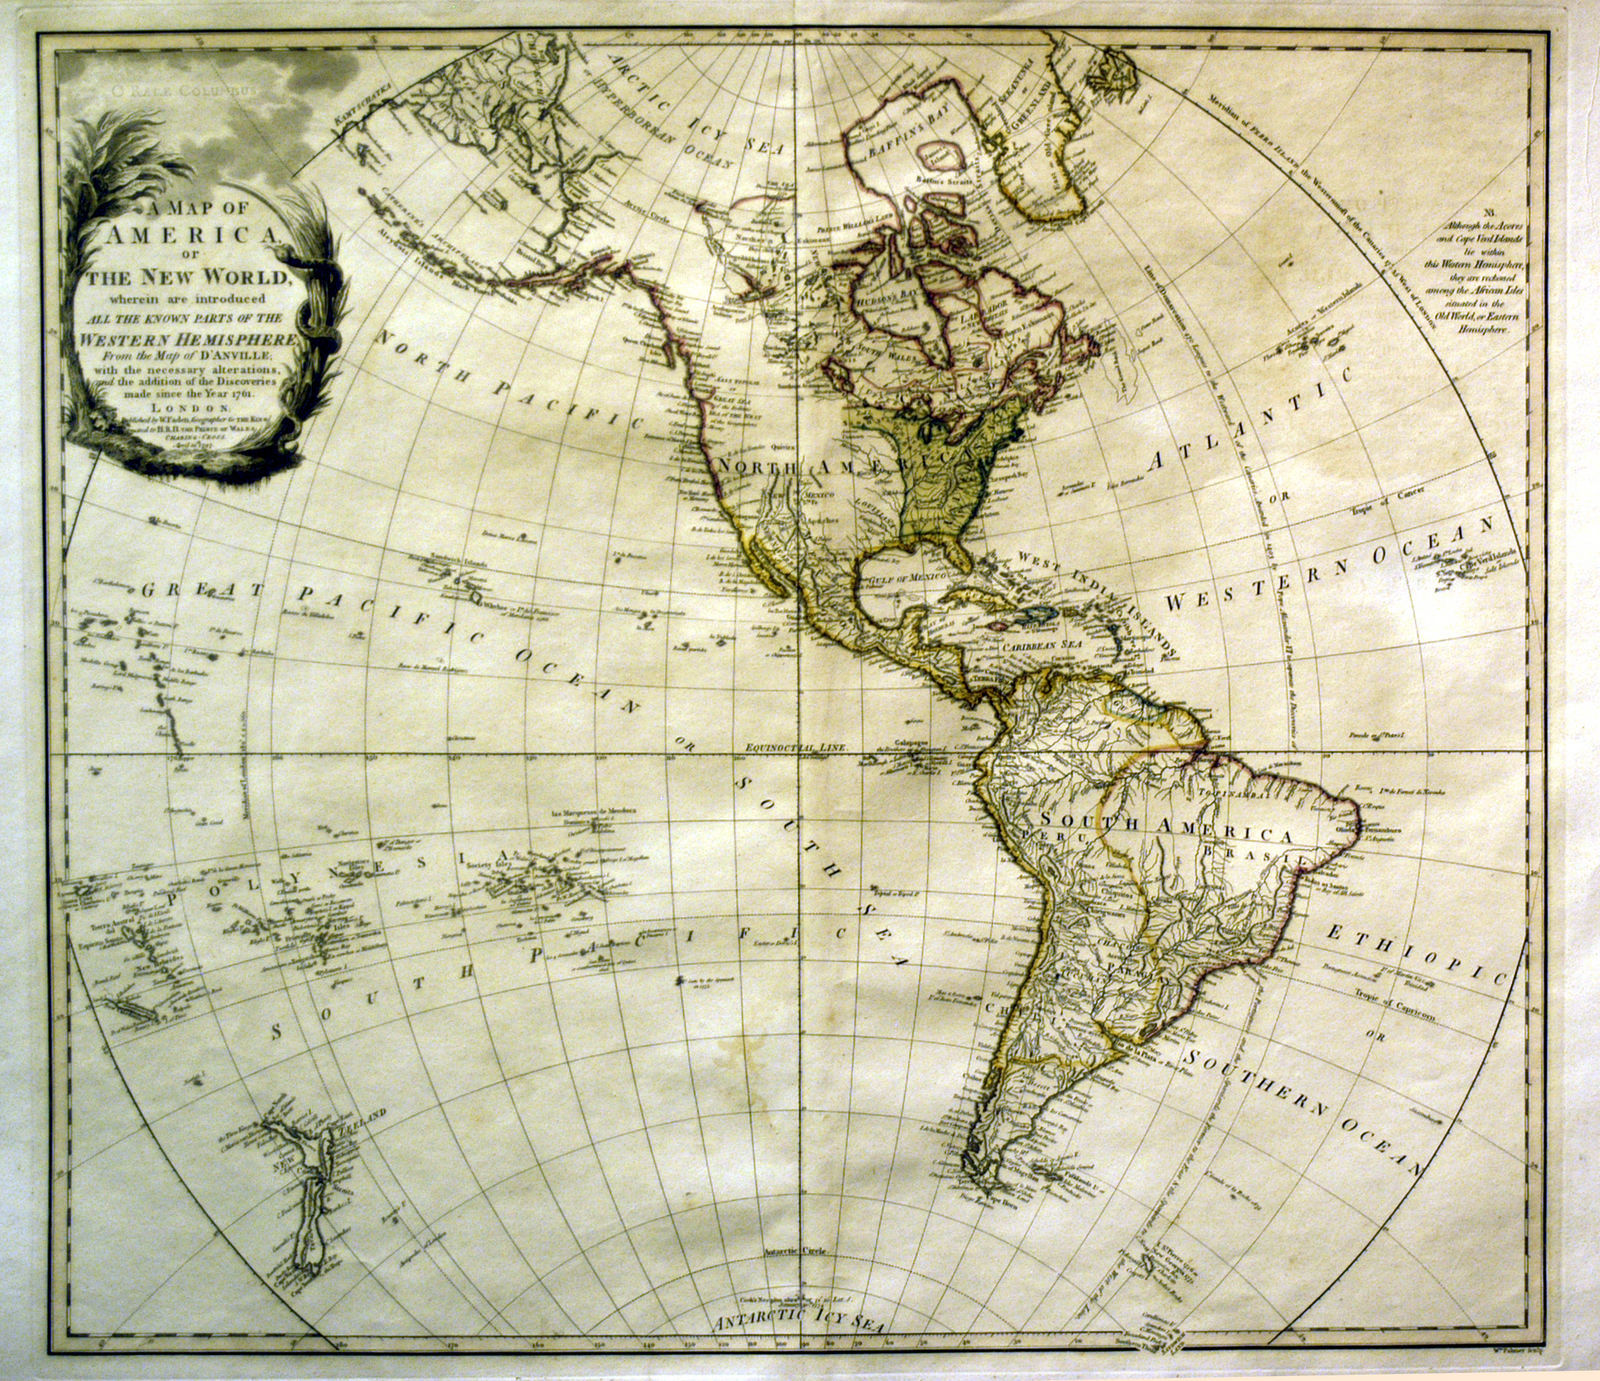 Jonathan potter map a map of north america or the new world a map of north america or the new world gumiabroncs Choice Image